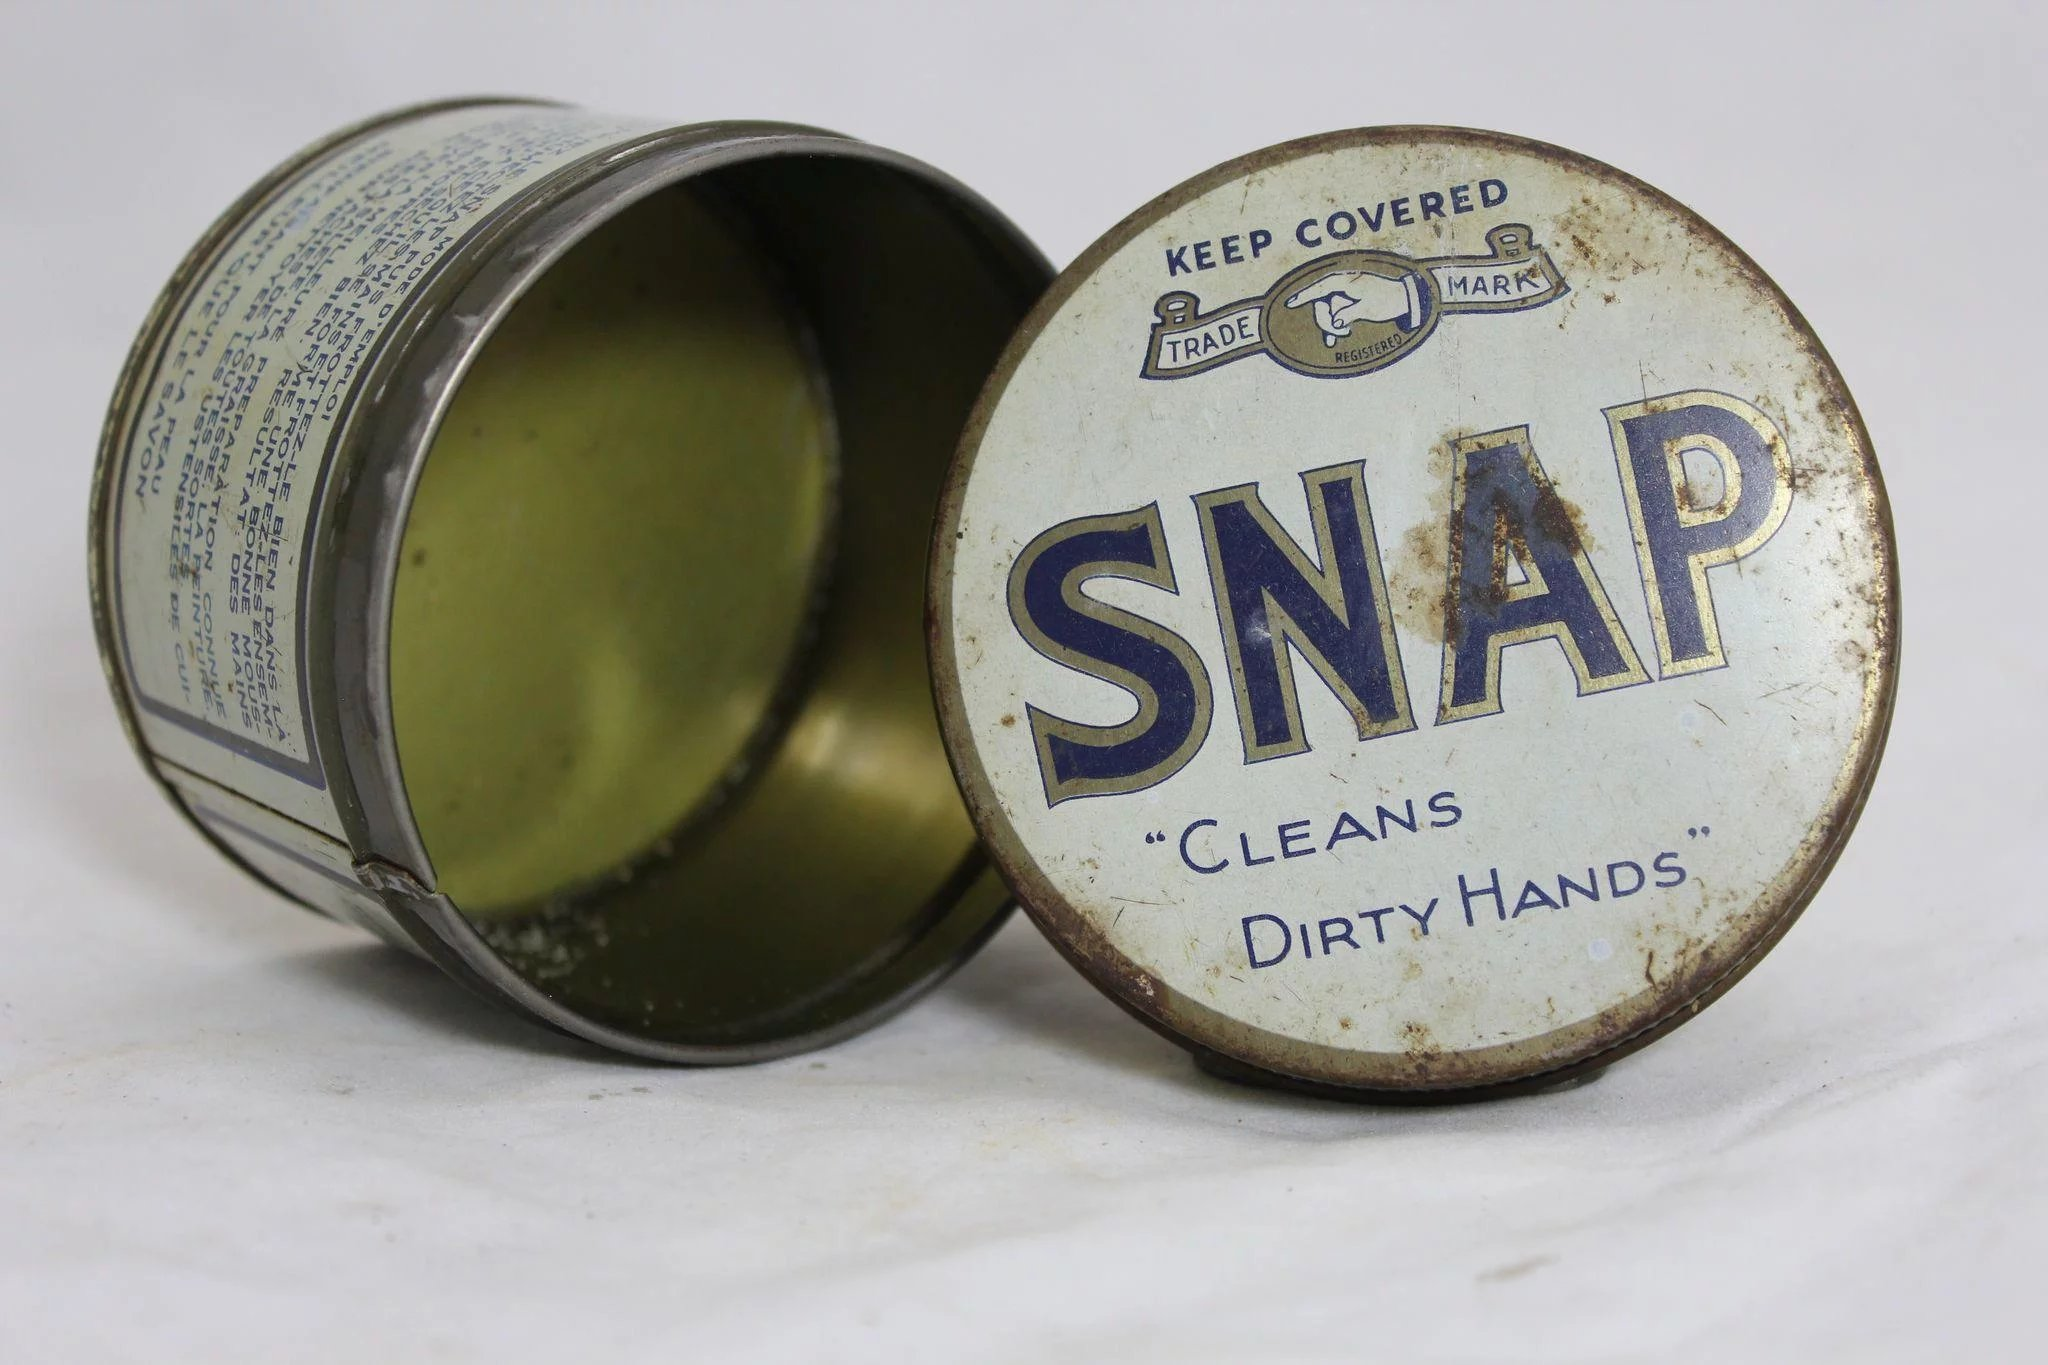 1950 S Quot Snap Quot Hand Cleaner Tin The Curious American